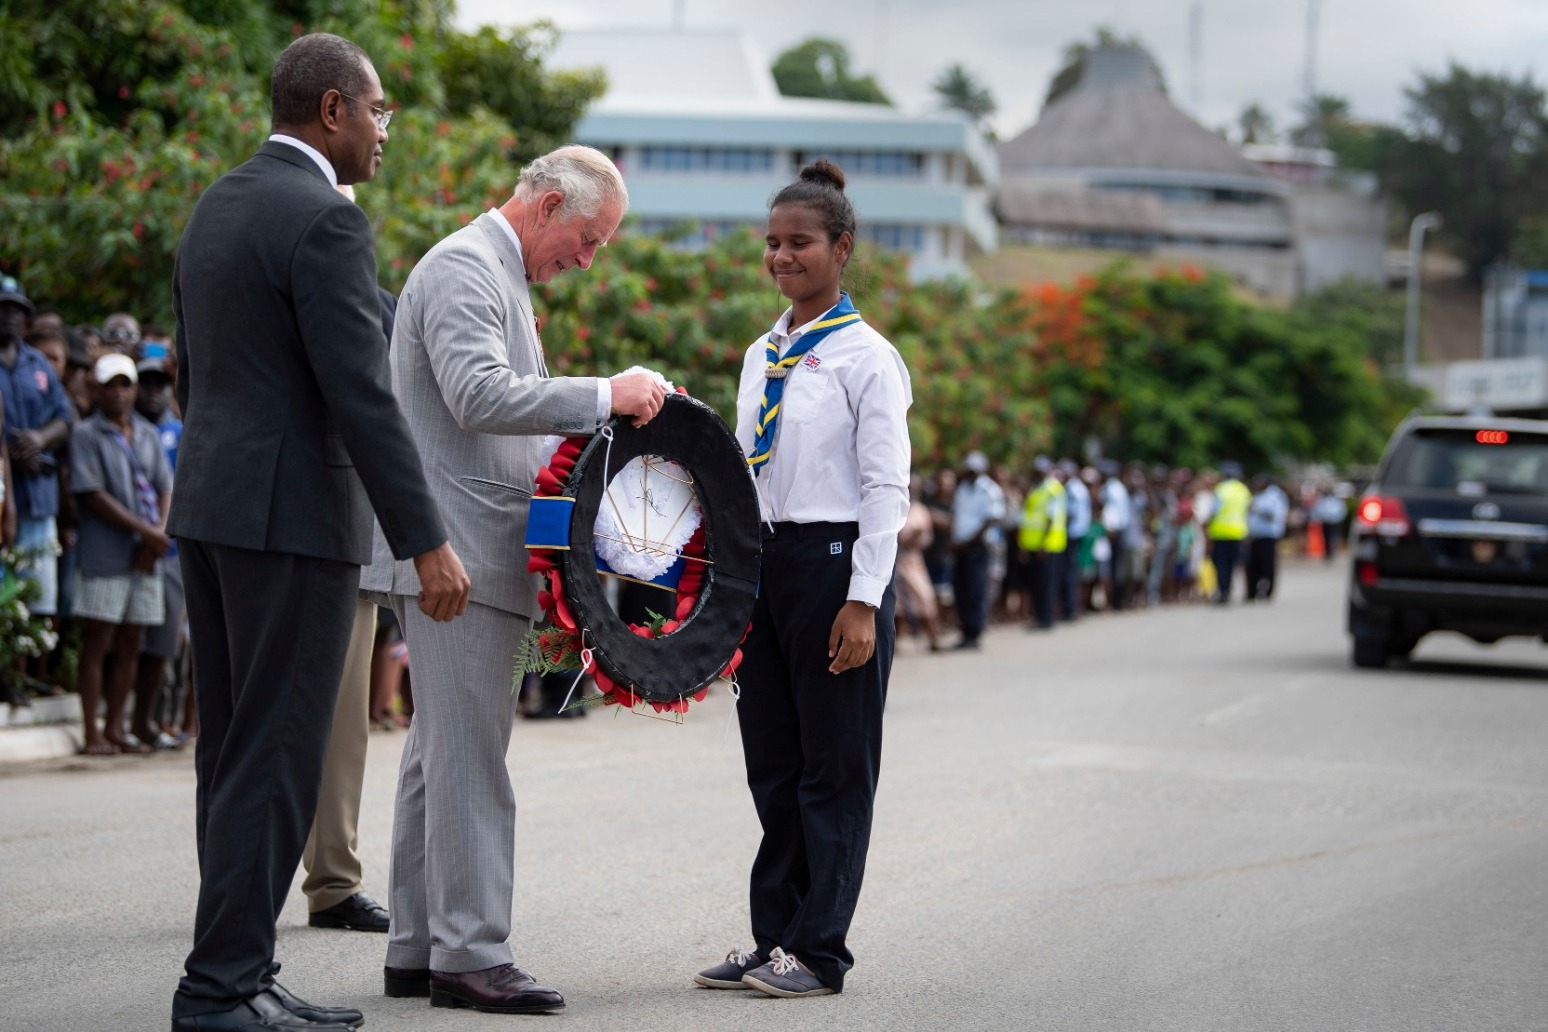 PRINCE OF WALES MEETS BOY WHO HELPED A US SOLDIER GET A BURIAL 77 YEARS ON